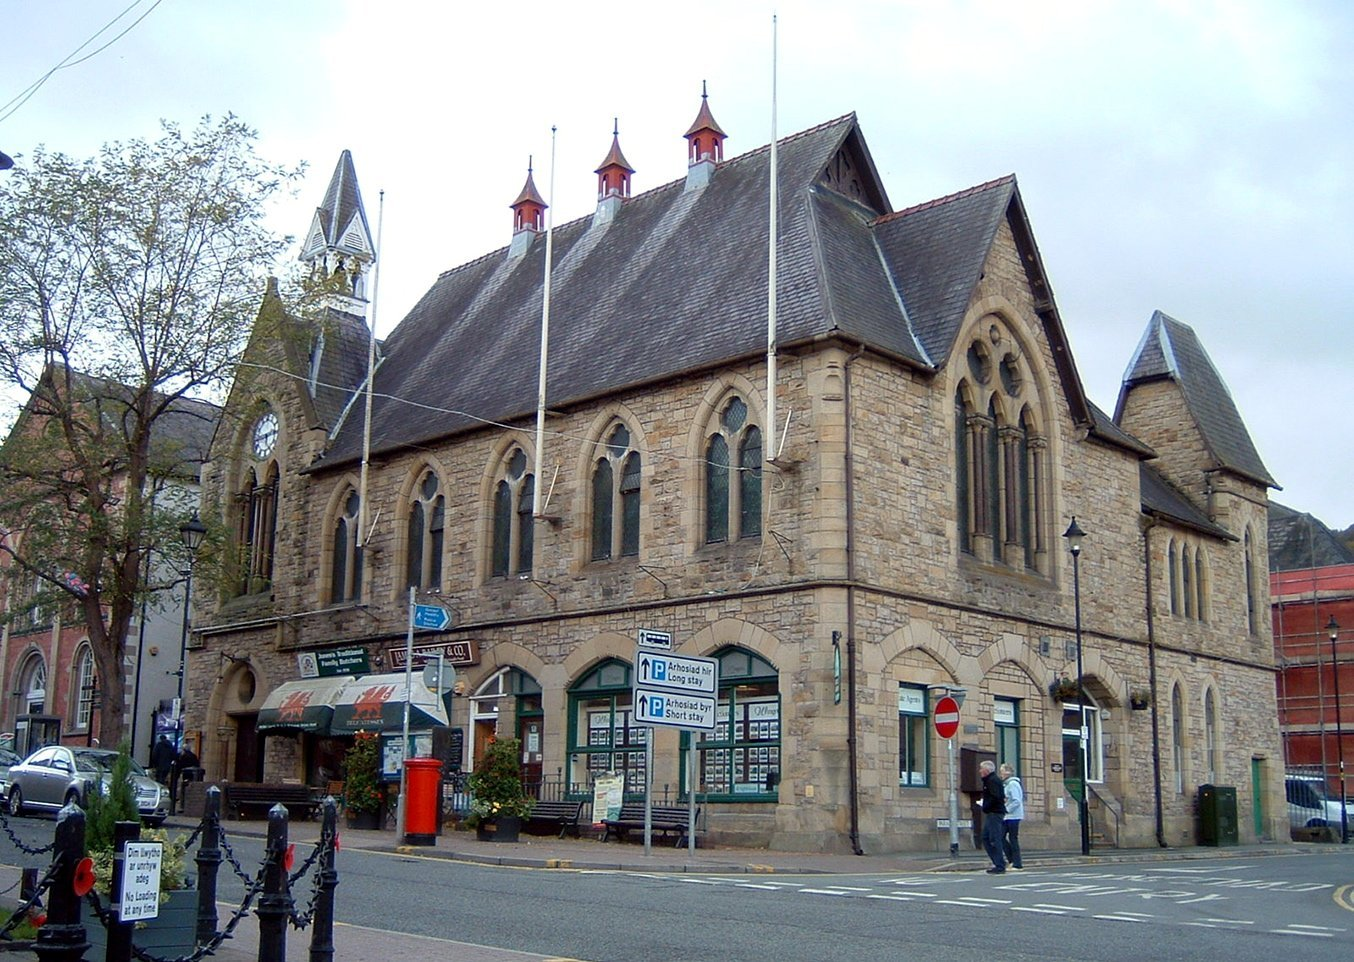 The play will be staged at Llangollen Town Hall in March.